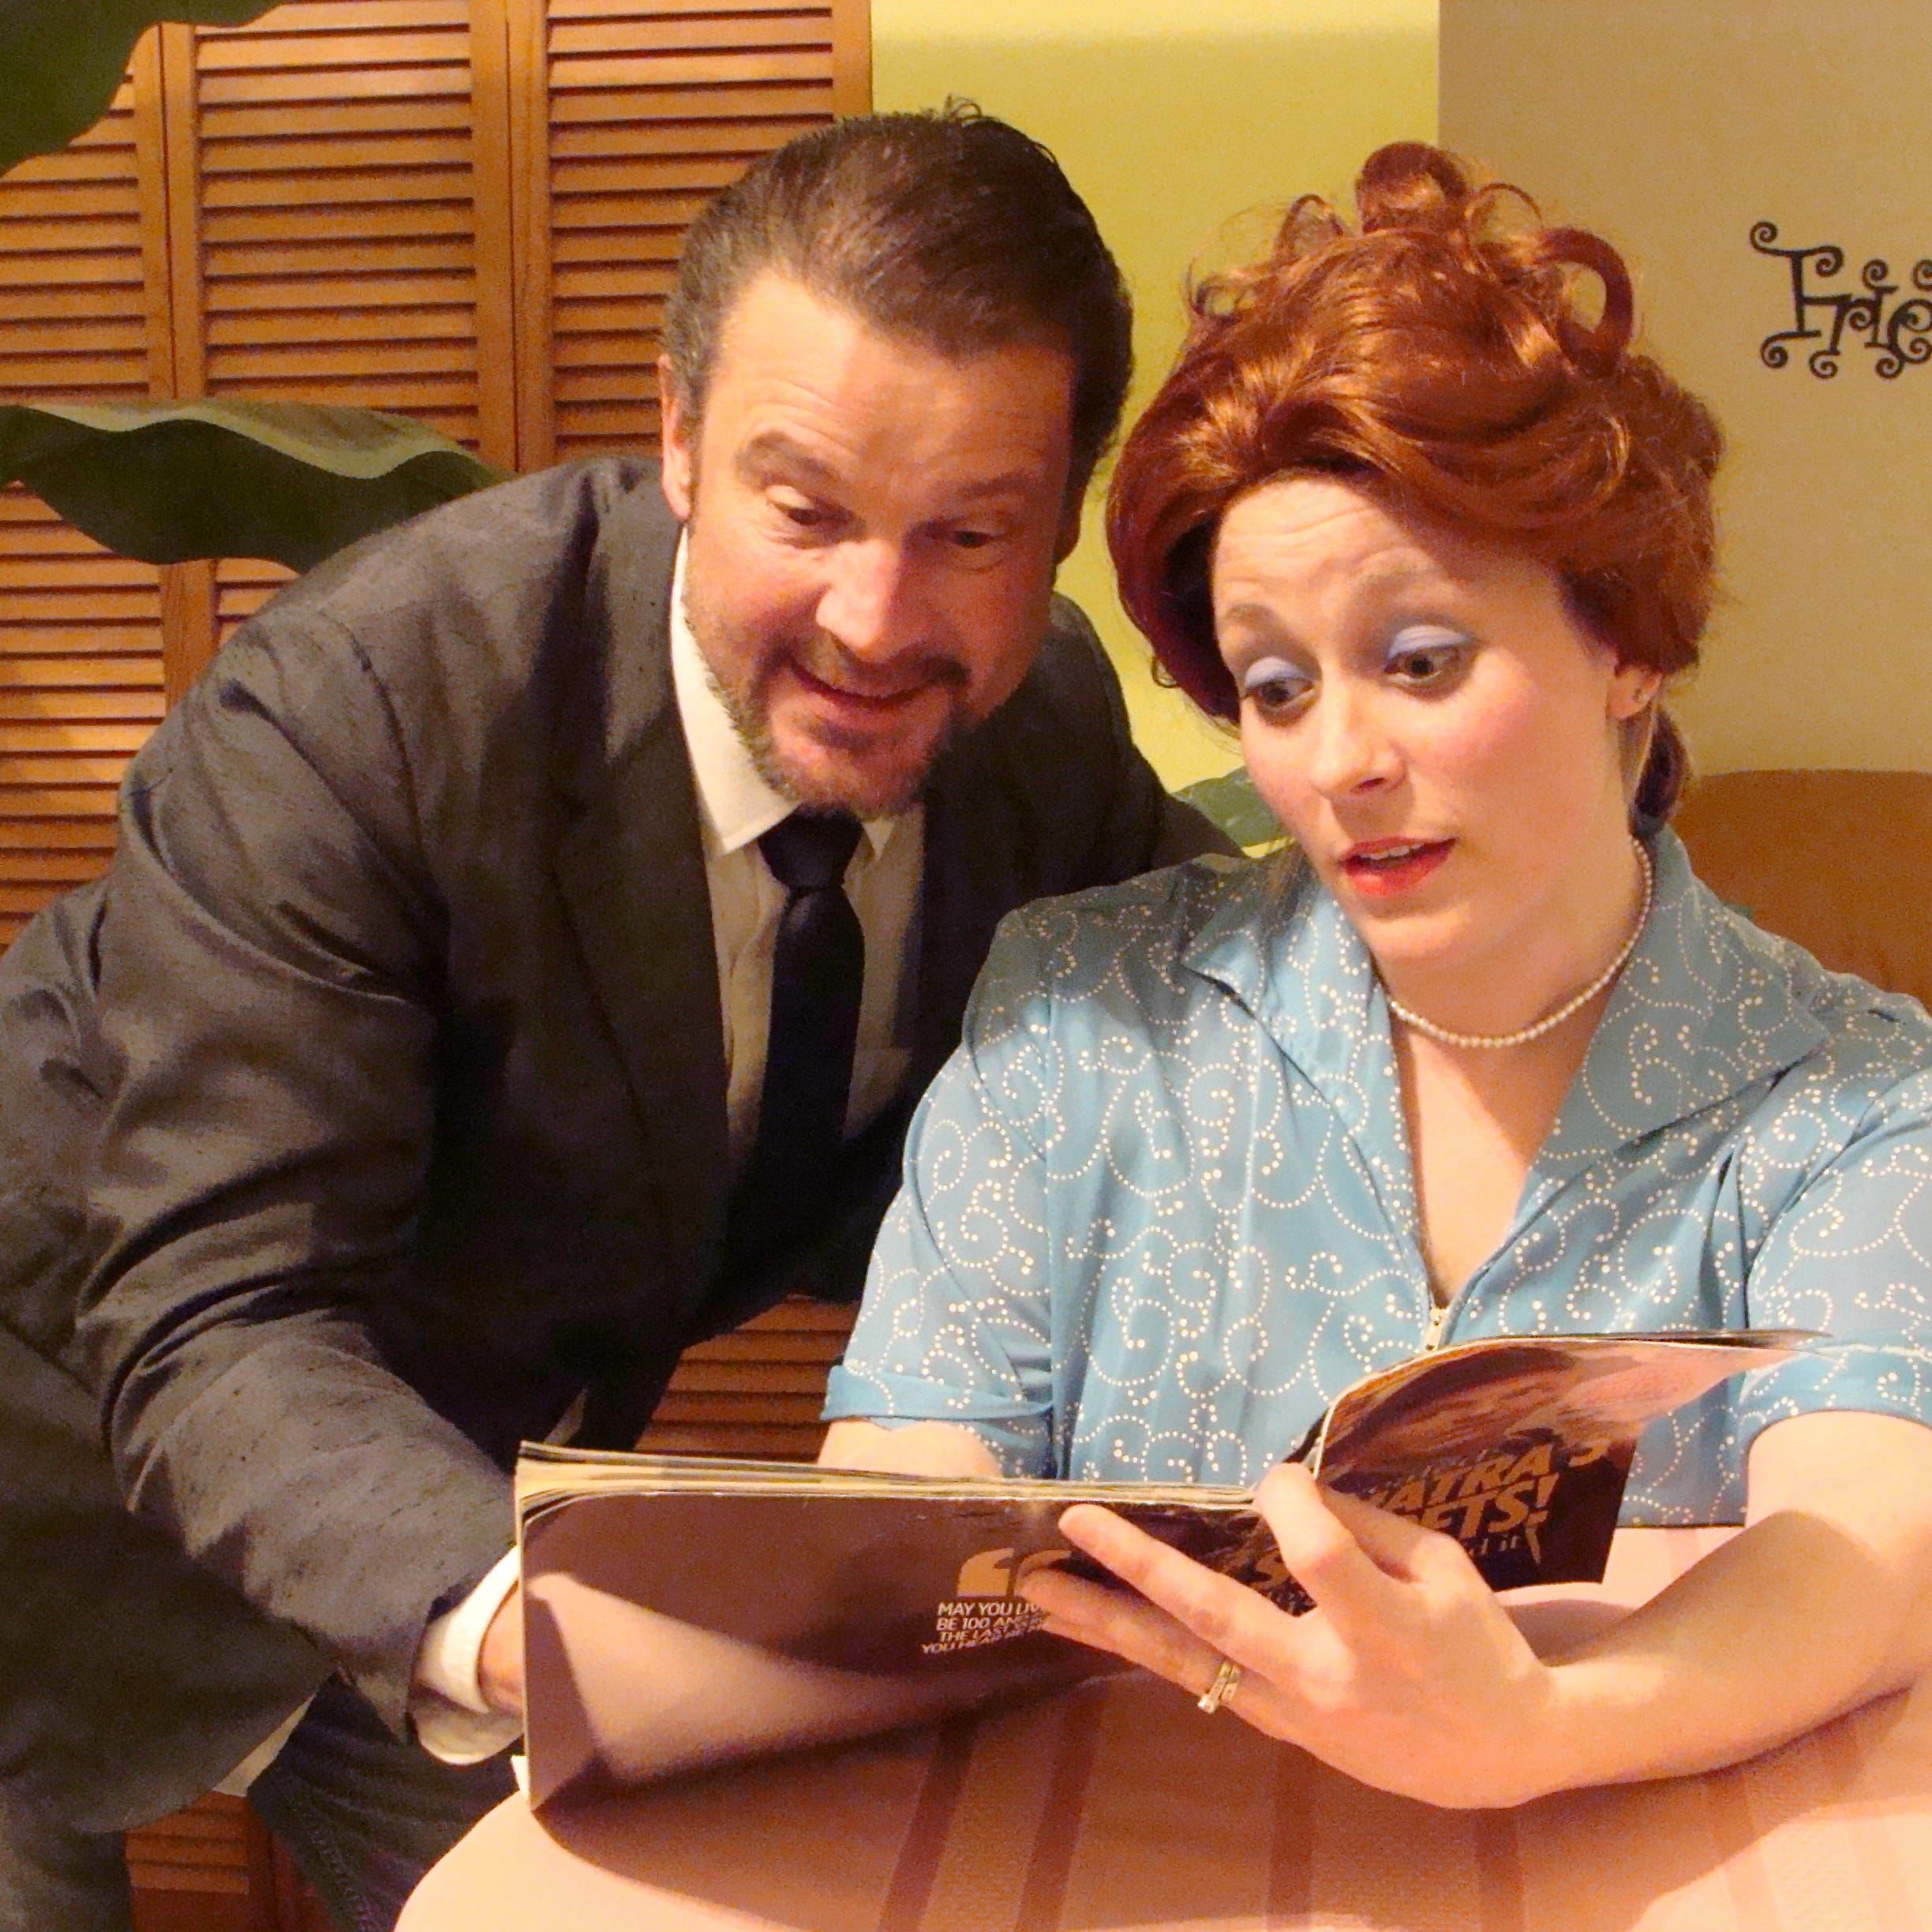 'I Love Lucy' murder mystery spoof returns with Rogue Theater